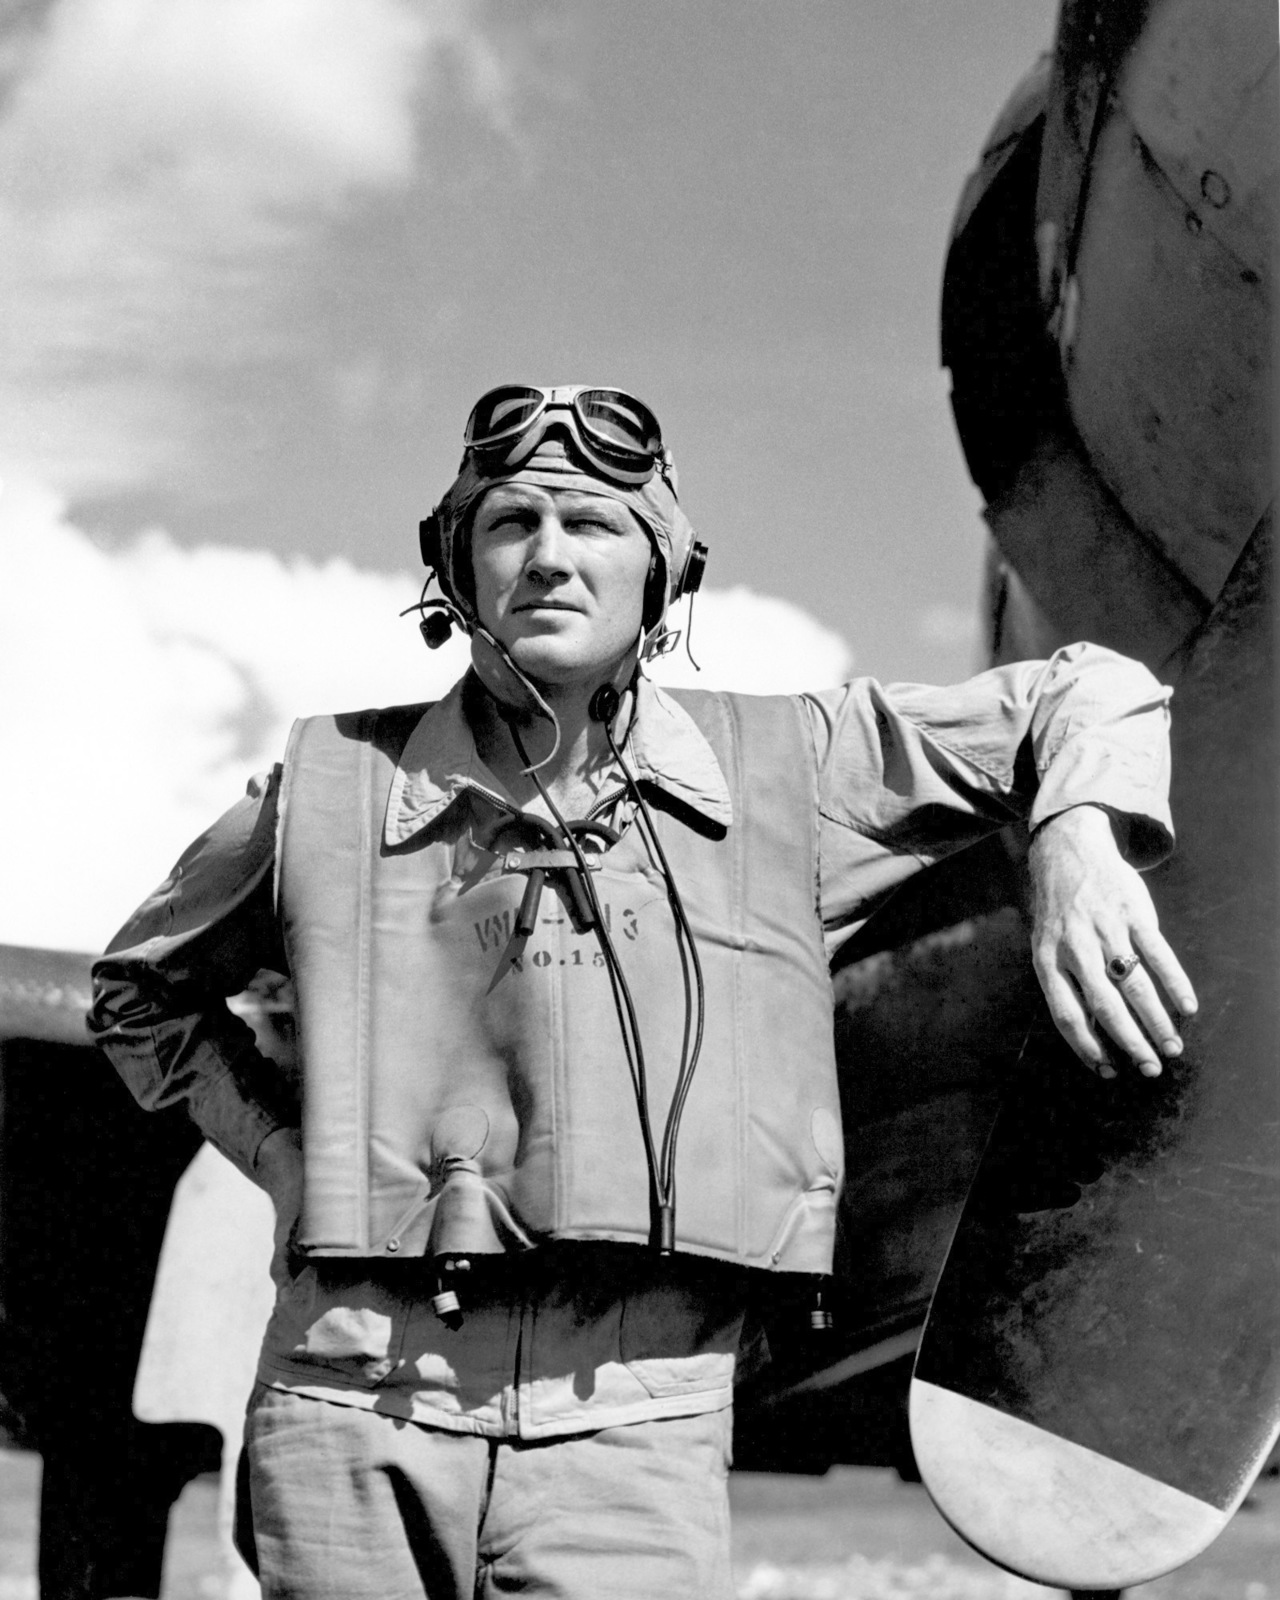 """World War II (WWII) era photograph of US Marine Corps (USMC) First Lieutenant (1LT) Sheldon O. Hall, standing next to a US Navy (USN) F4U""""CORSAIR""""aircraft at Henderson Field, Guadalcanal, 1943. 1LT Hall is an Ace Pilot credited with 6 kills. His hometown is Ottawa, Ohio.  (Exact date shot unknown)"""